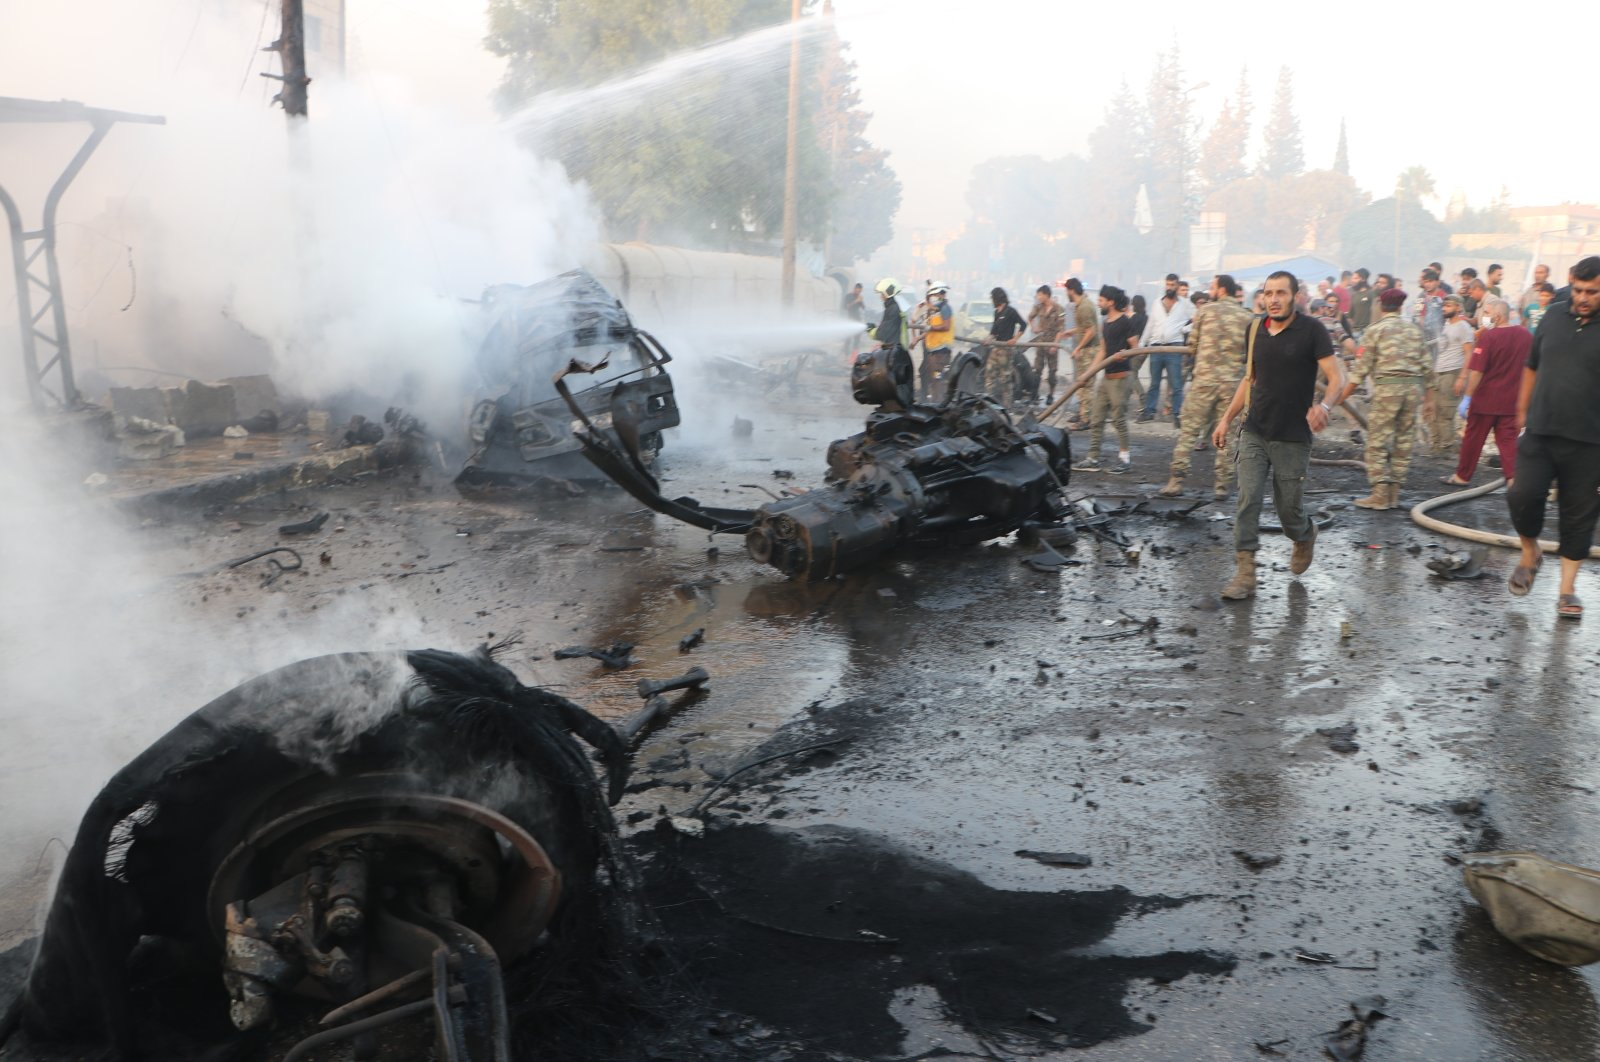 The scene of a deadly vehicle bombing carried out by YPG/PKK terrorists in Afrin, northwestern Syria, Sept. 14, 2020. (AA Photo)